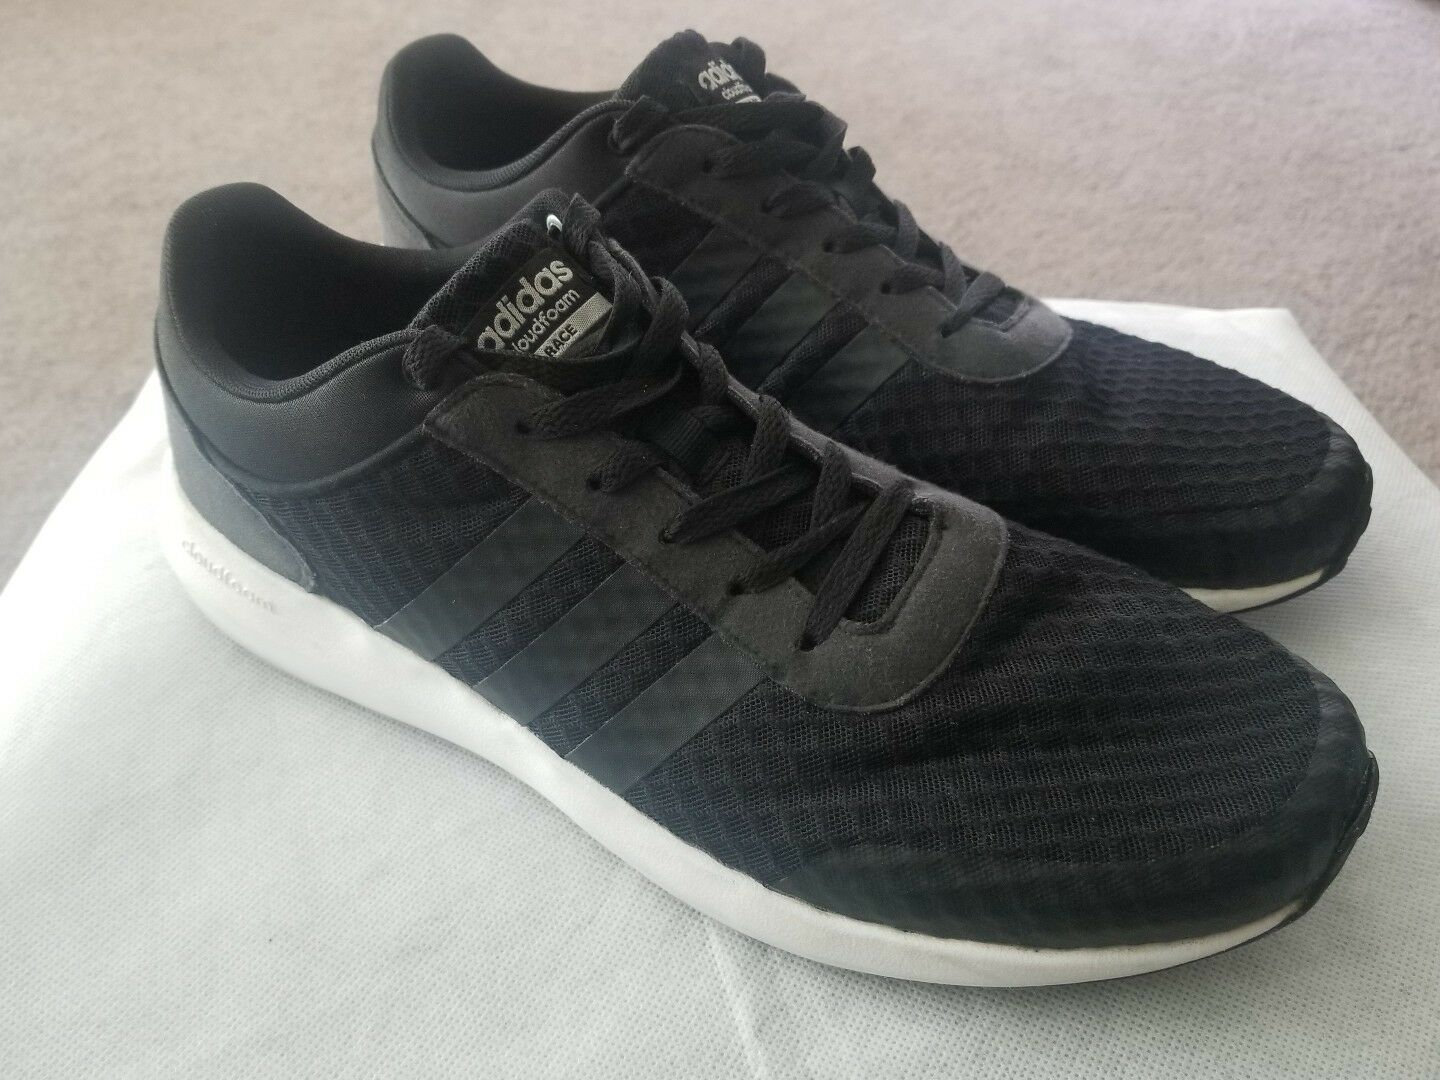 Adidas Cloudfoam Race Men's Shoes Sneakers Athletic Size 12 Black & White AW5321